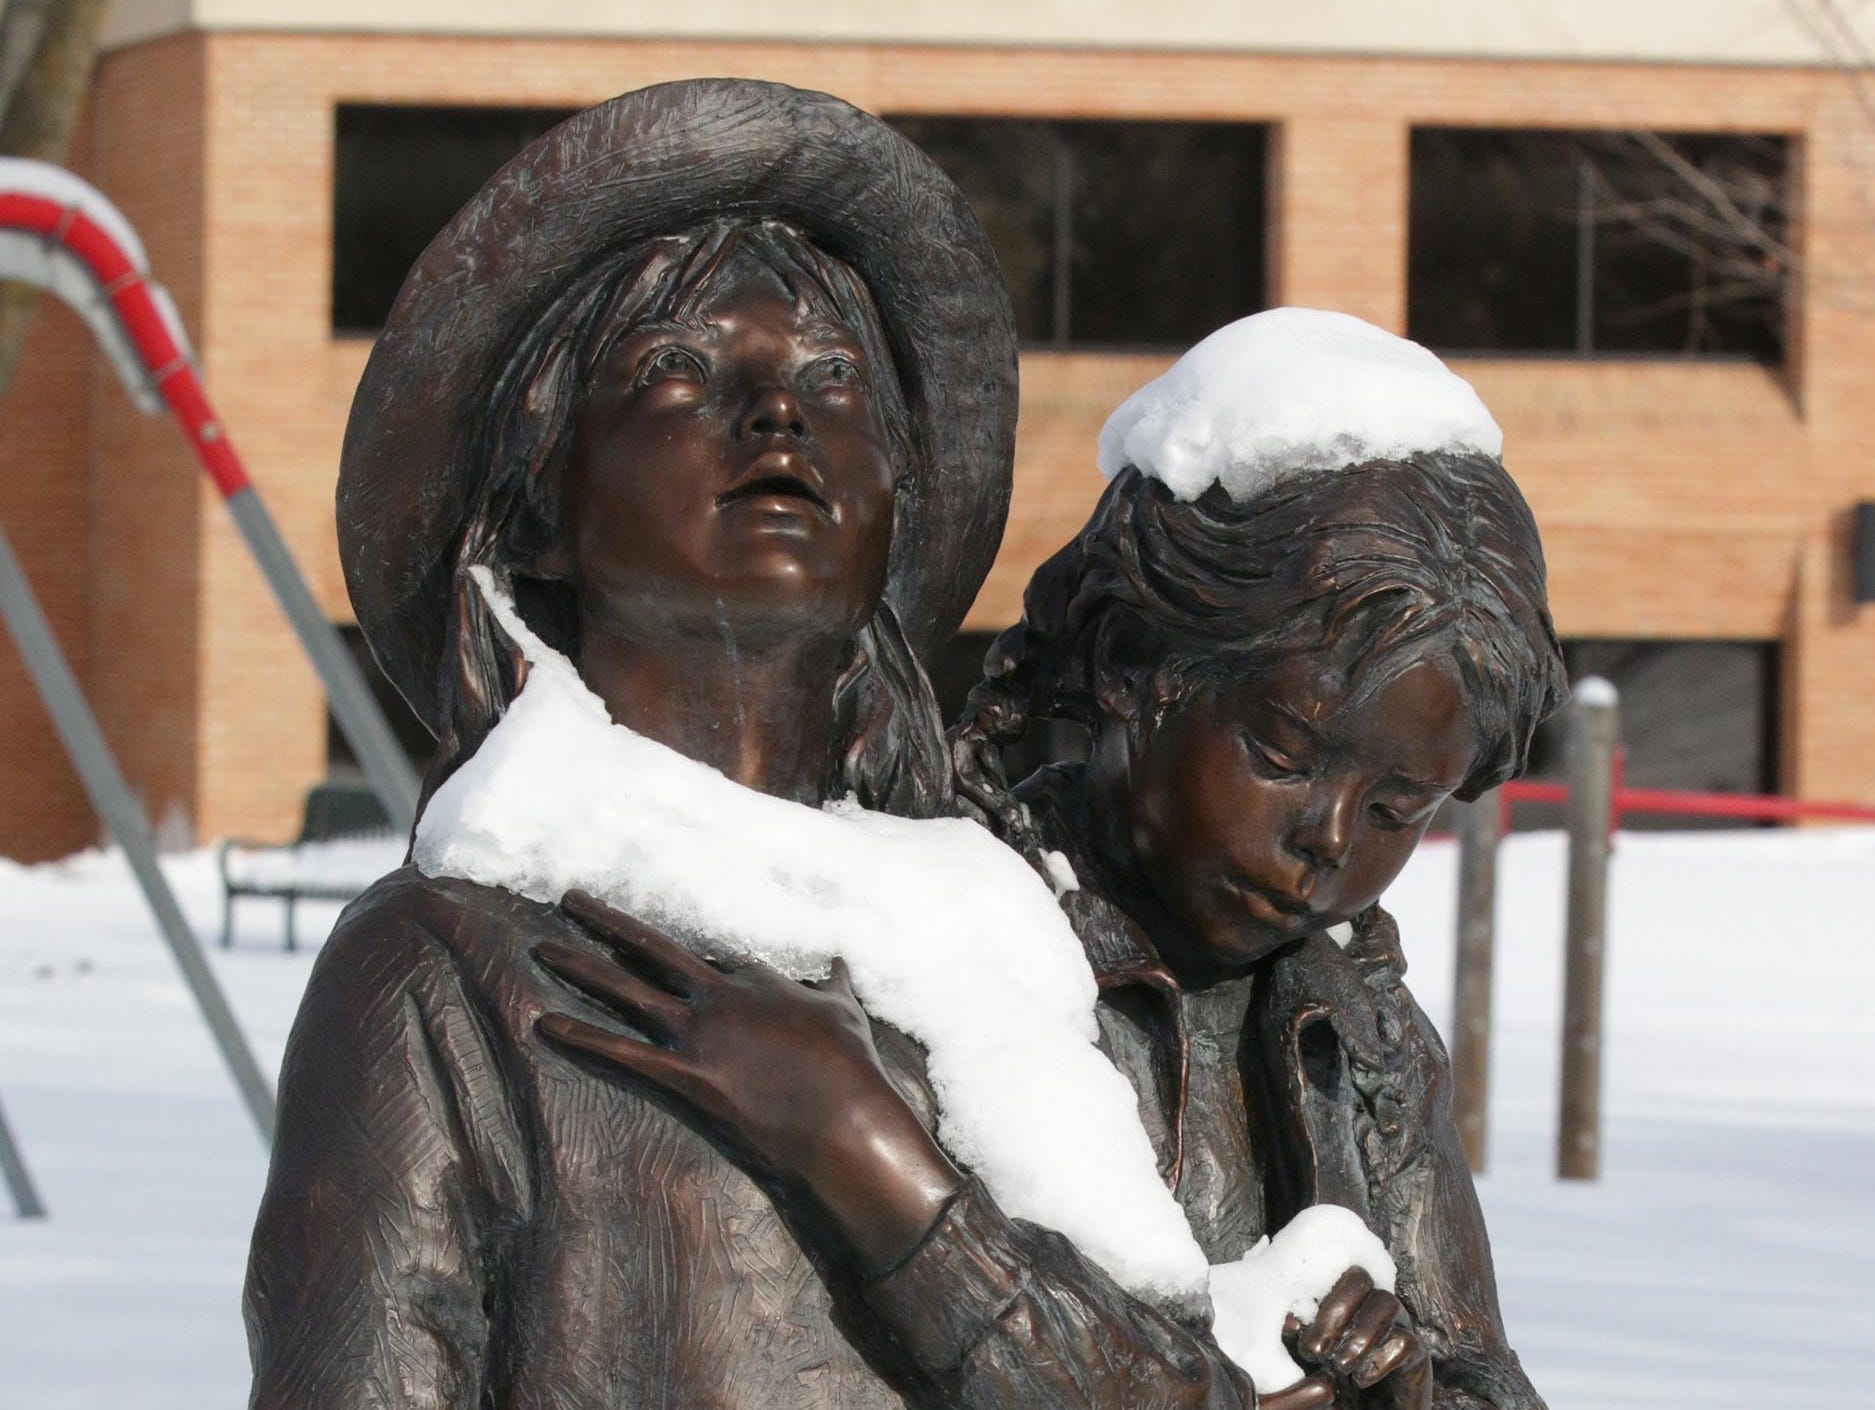 Bronze statues in Elkhart Lake are glazed with snow and ice, Saturday, January 26, 2019, in Elkhart Lake, Wis.